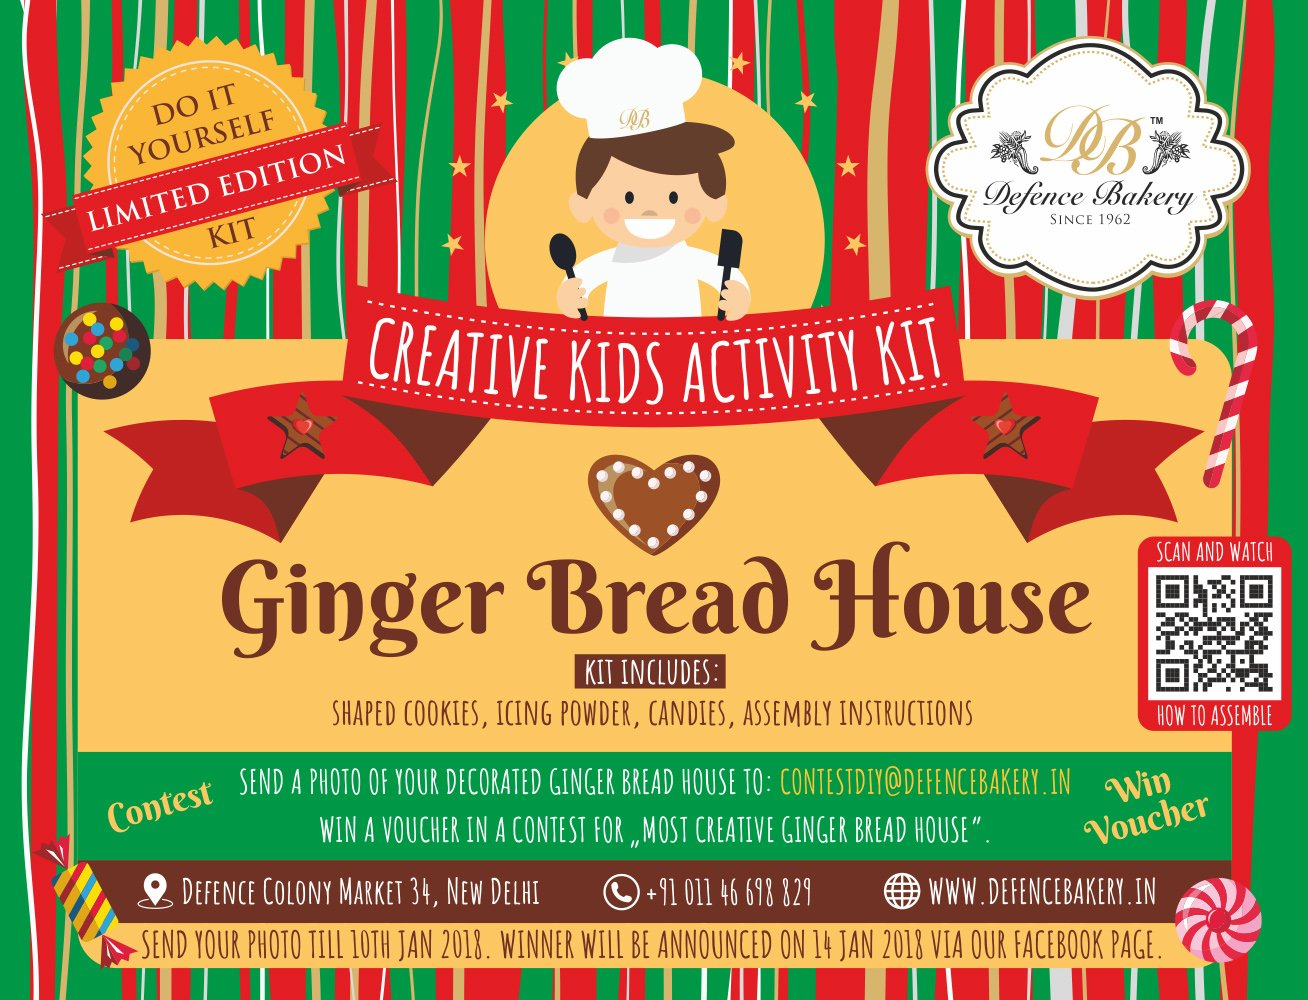 Gingerbread house diy kit by defence bakery since 1962 amazon gingerbread house diy kit by defence bakery since 1962 amazon grocery gourmet foods solutioingenieria Gallery